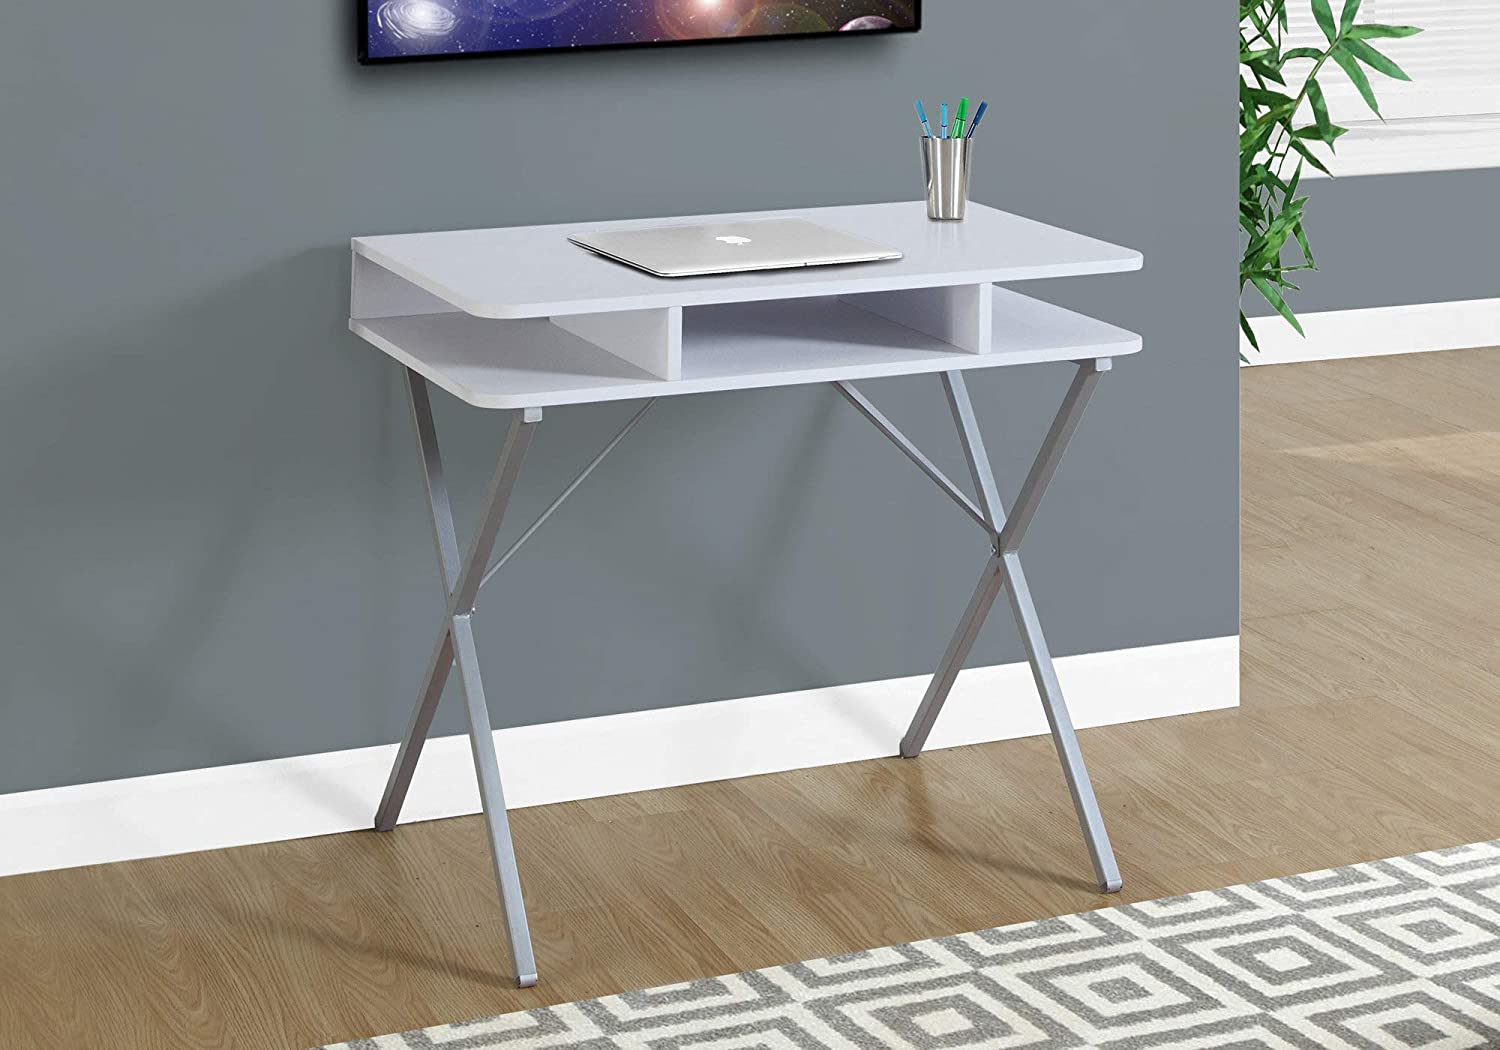 Amazon Com Monarch Specialties Laptop Table Small Desk With Open Shelves Home Office Computer Desk Metal Legs 31 L White Furniture Decor